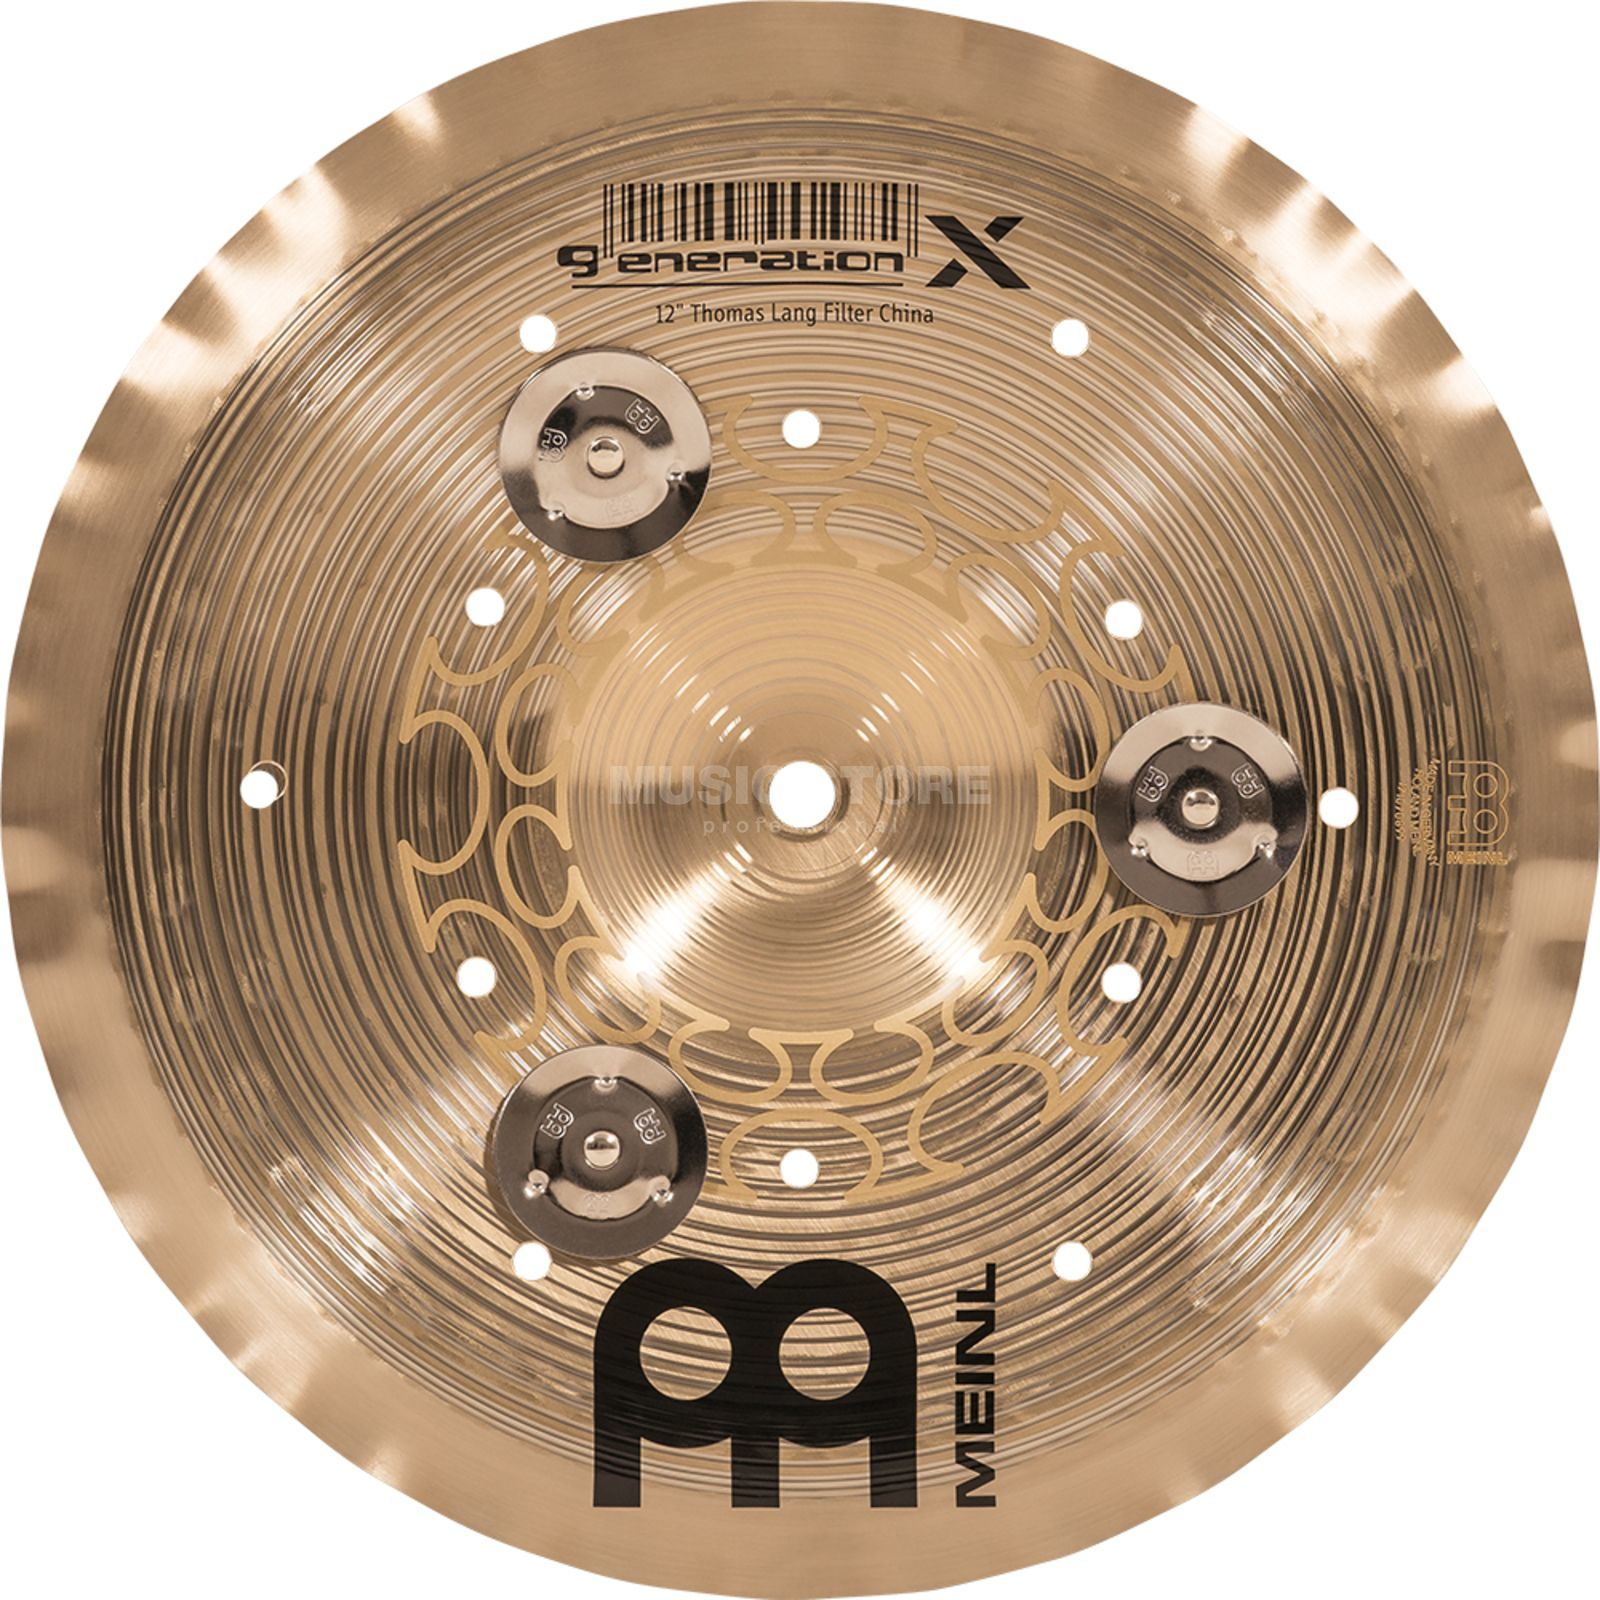 "Meinl Generation X Filter China 12"" GX-12FCH-J, with Jingles Imagem do produto"